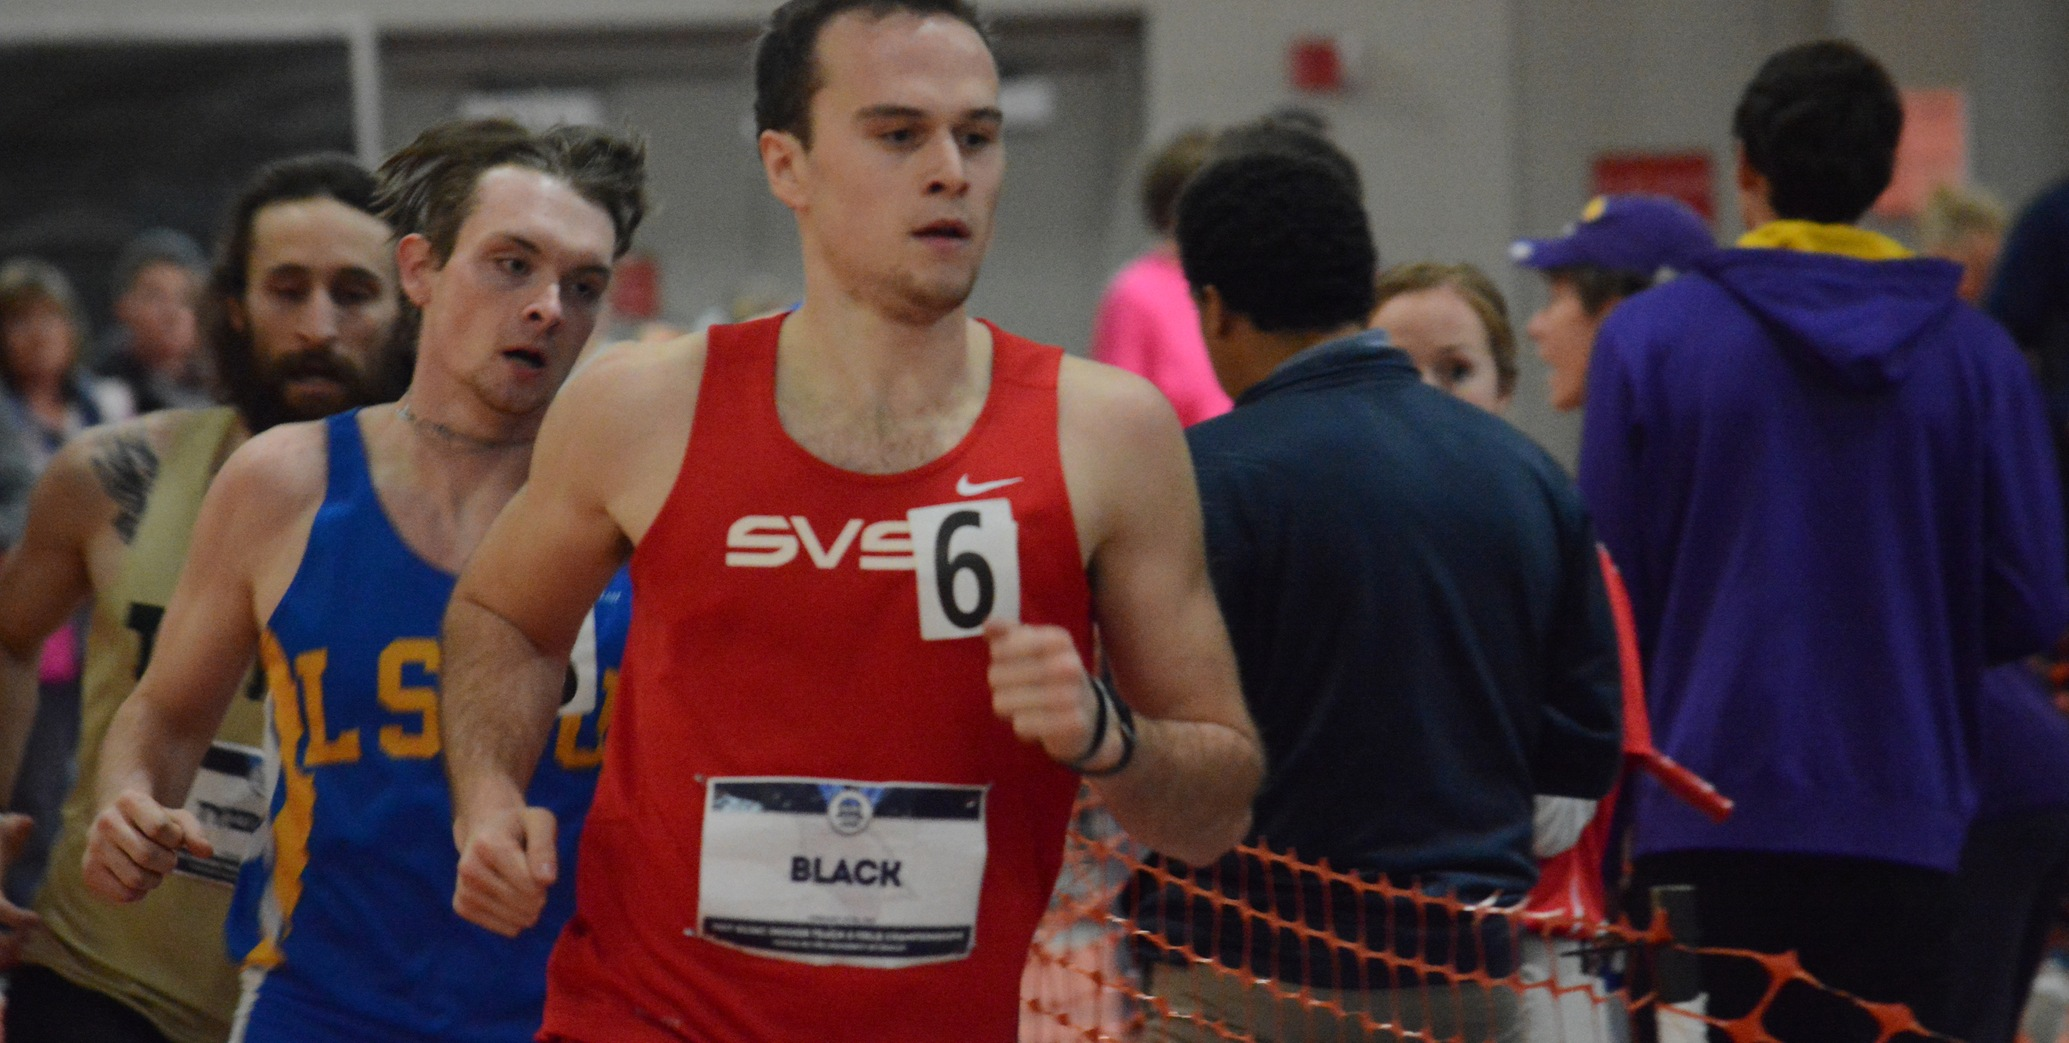 Sam Black finished second in the Heptathlon with a provisional mark of 5,032 points...